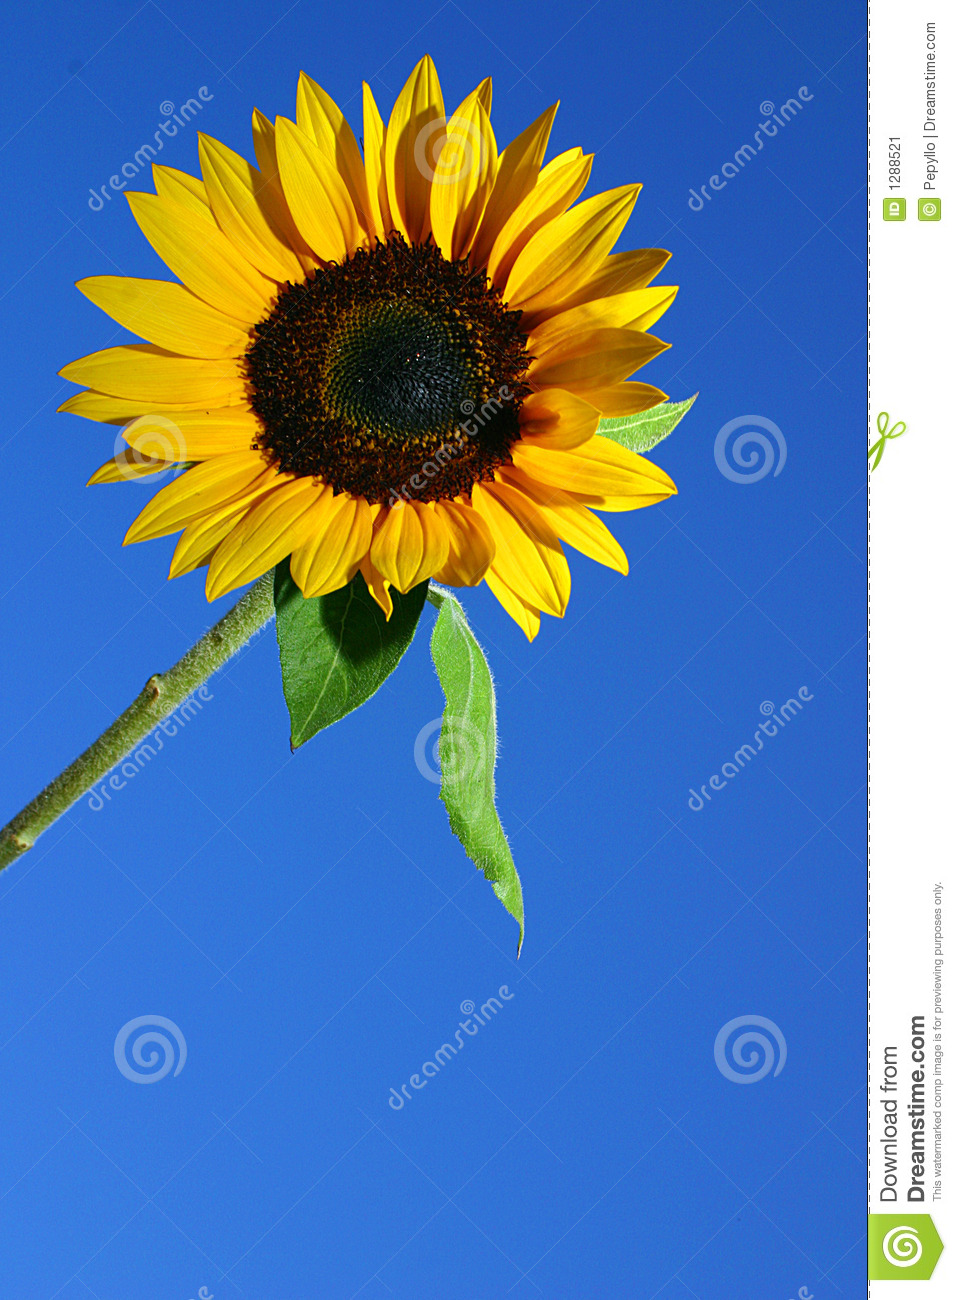 SUNFLOWER AND BLUE SKY Stock Image - Image: 1288521